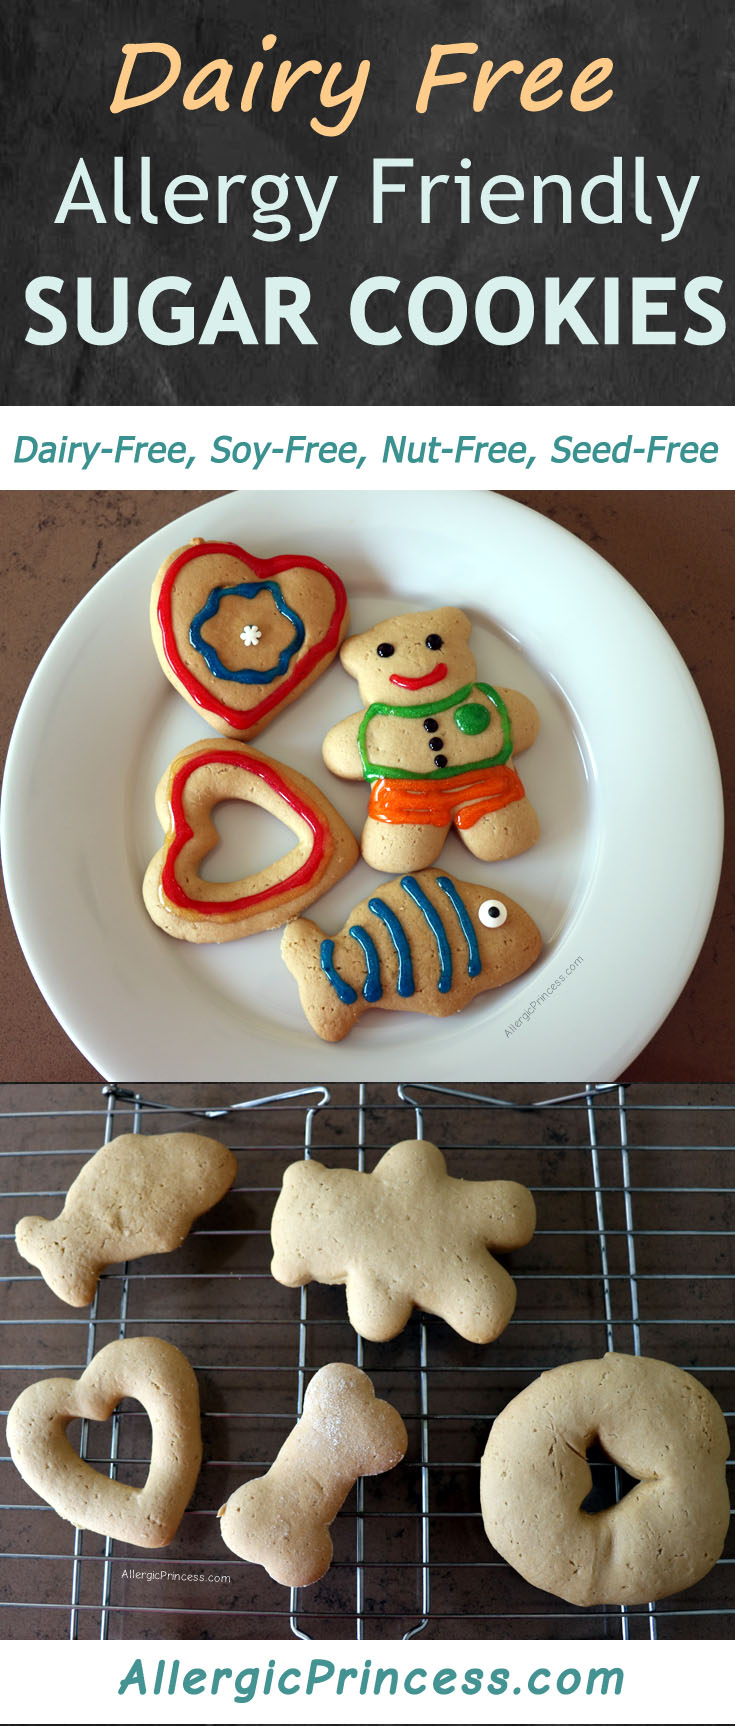 This dairy free sugar cookie recipe makes the perfect dough. Easy to roll out and cut. Delicious and fun to decorate!